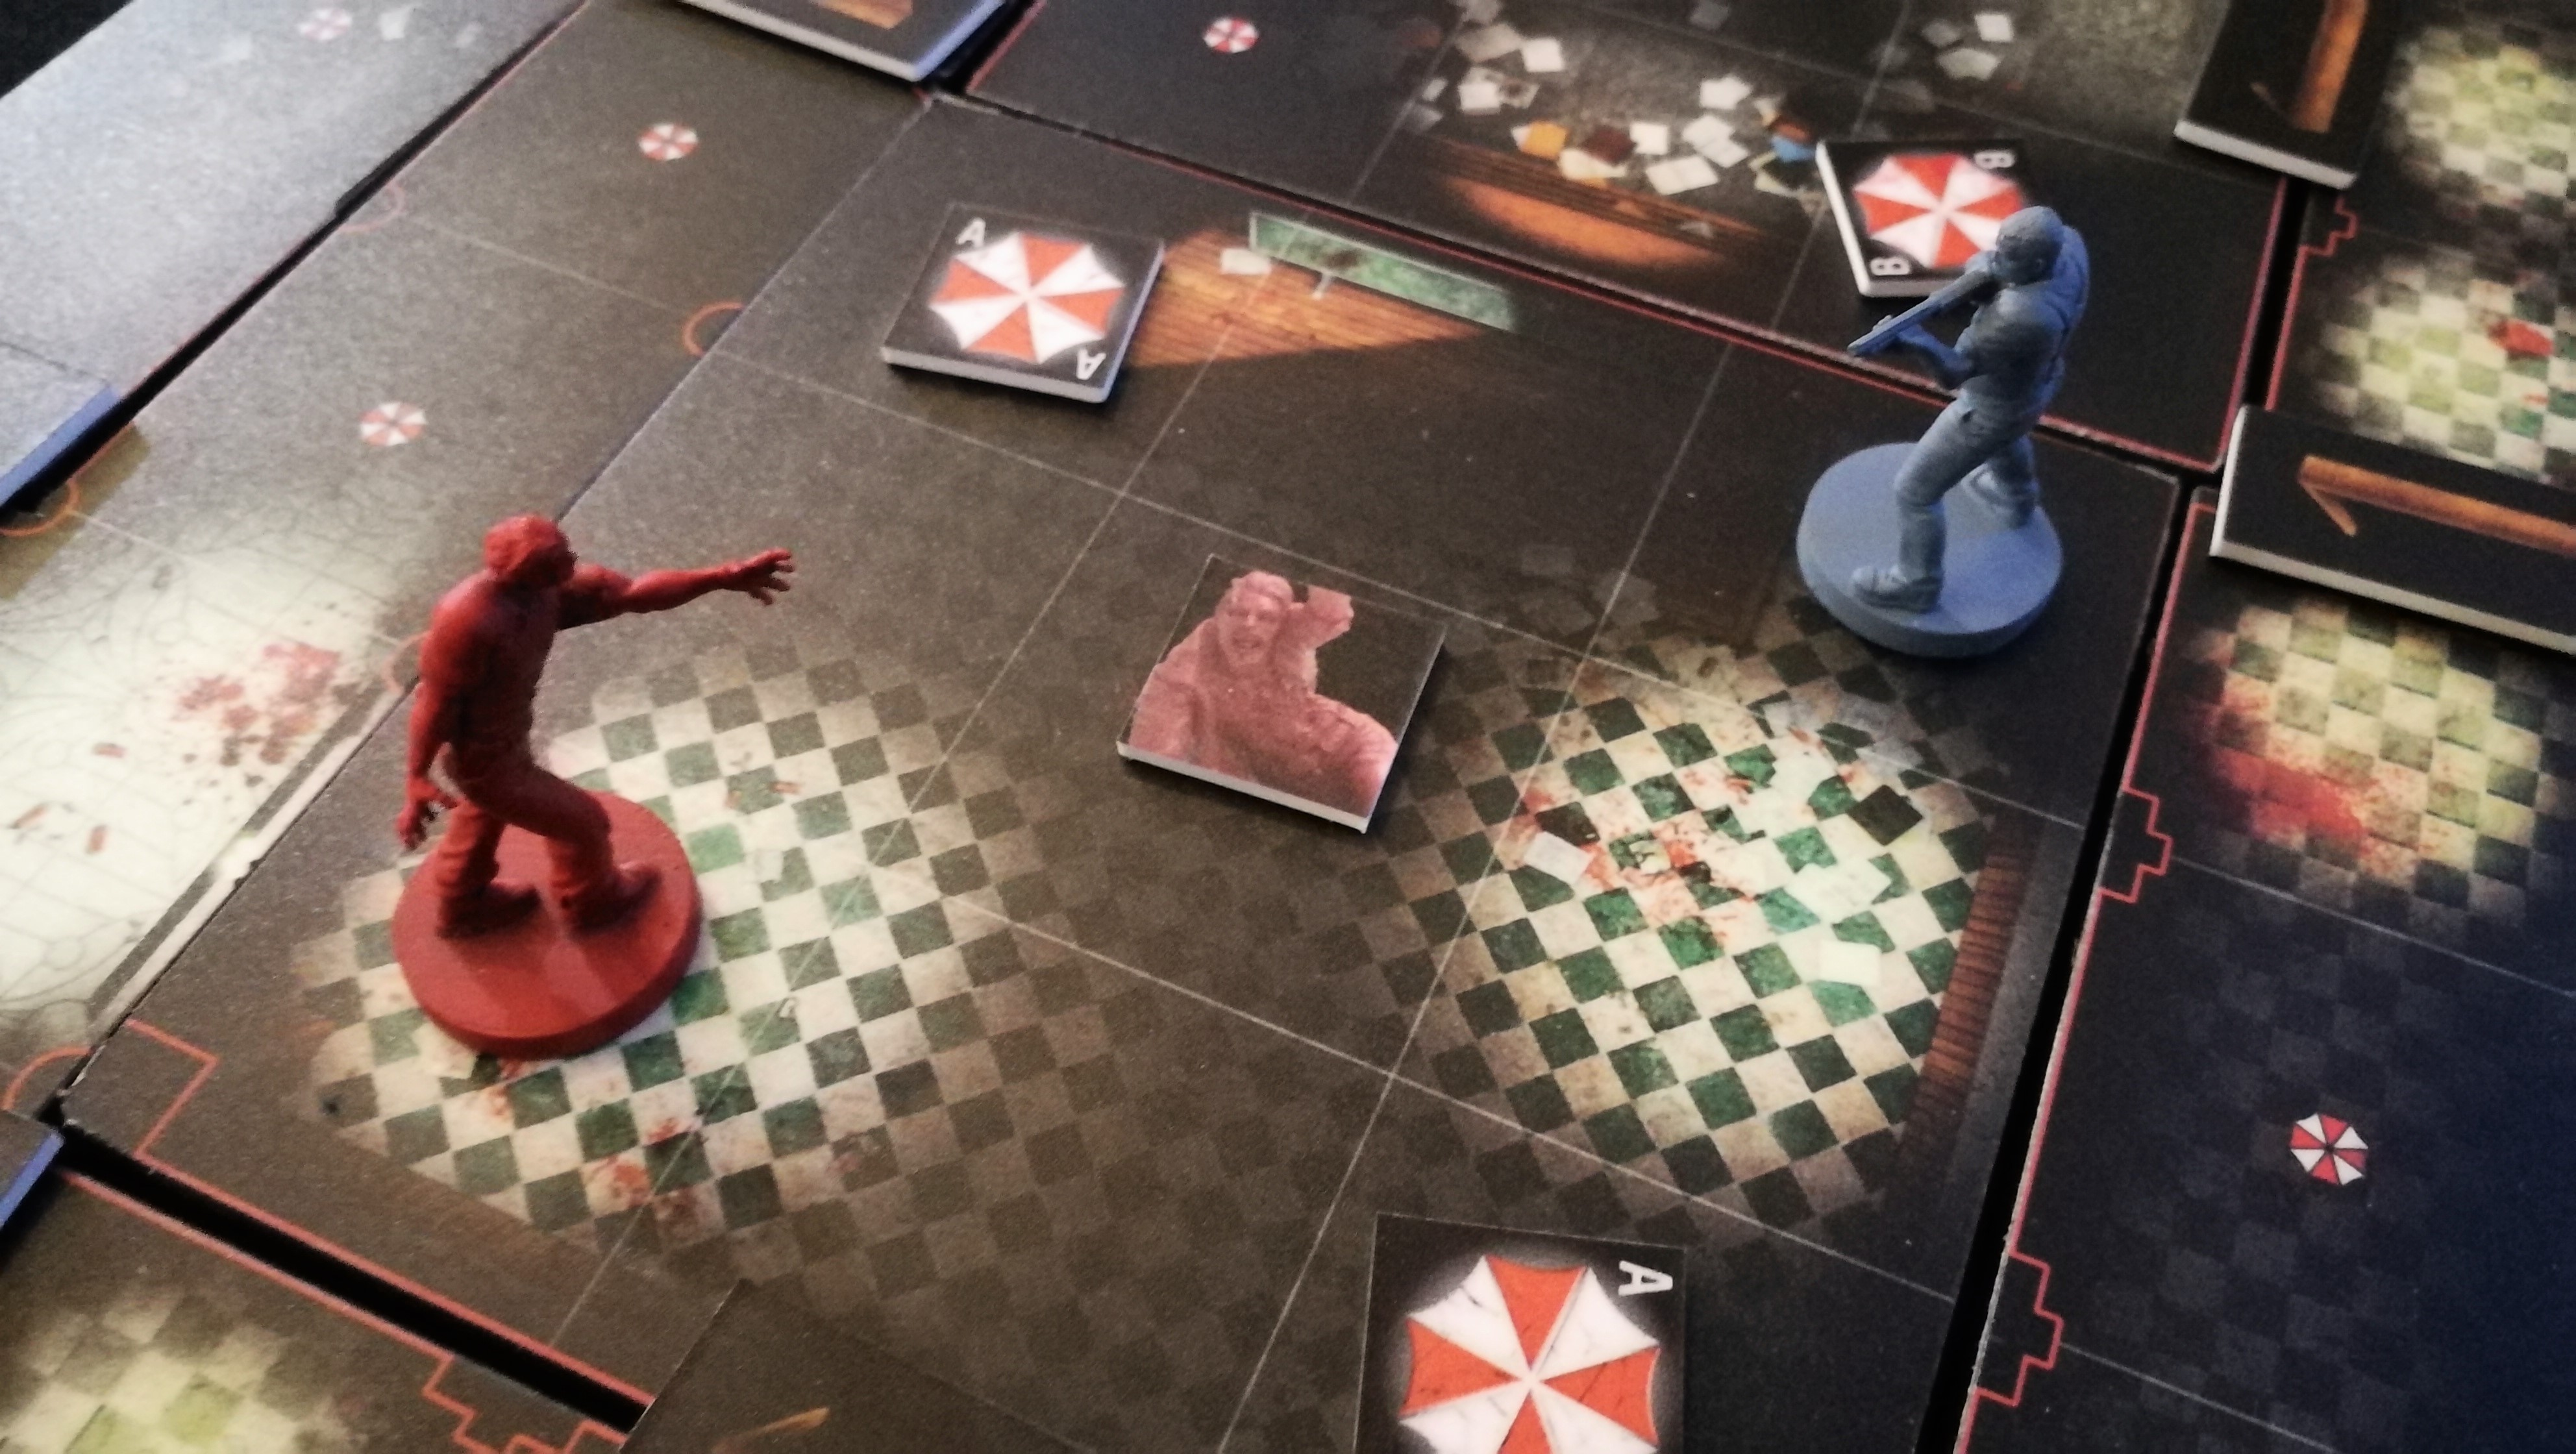 Newly Updated Resident Evil 2 Board Game Playthrough Ontabletop